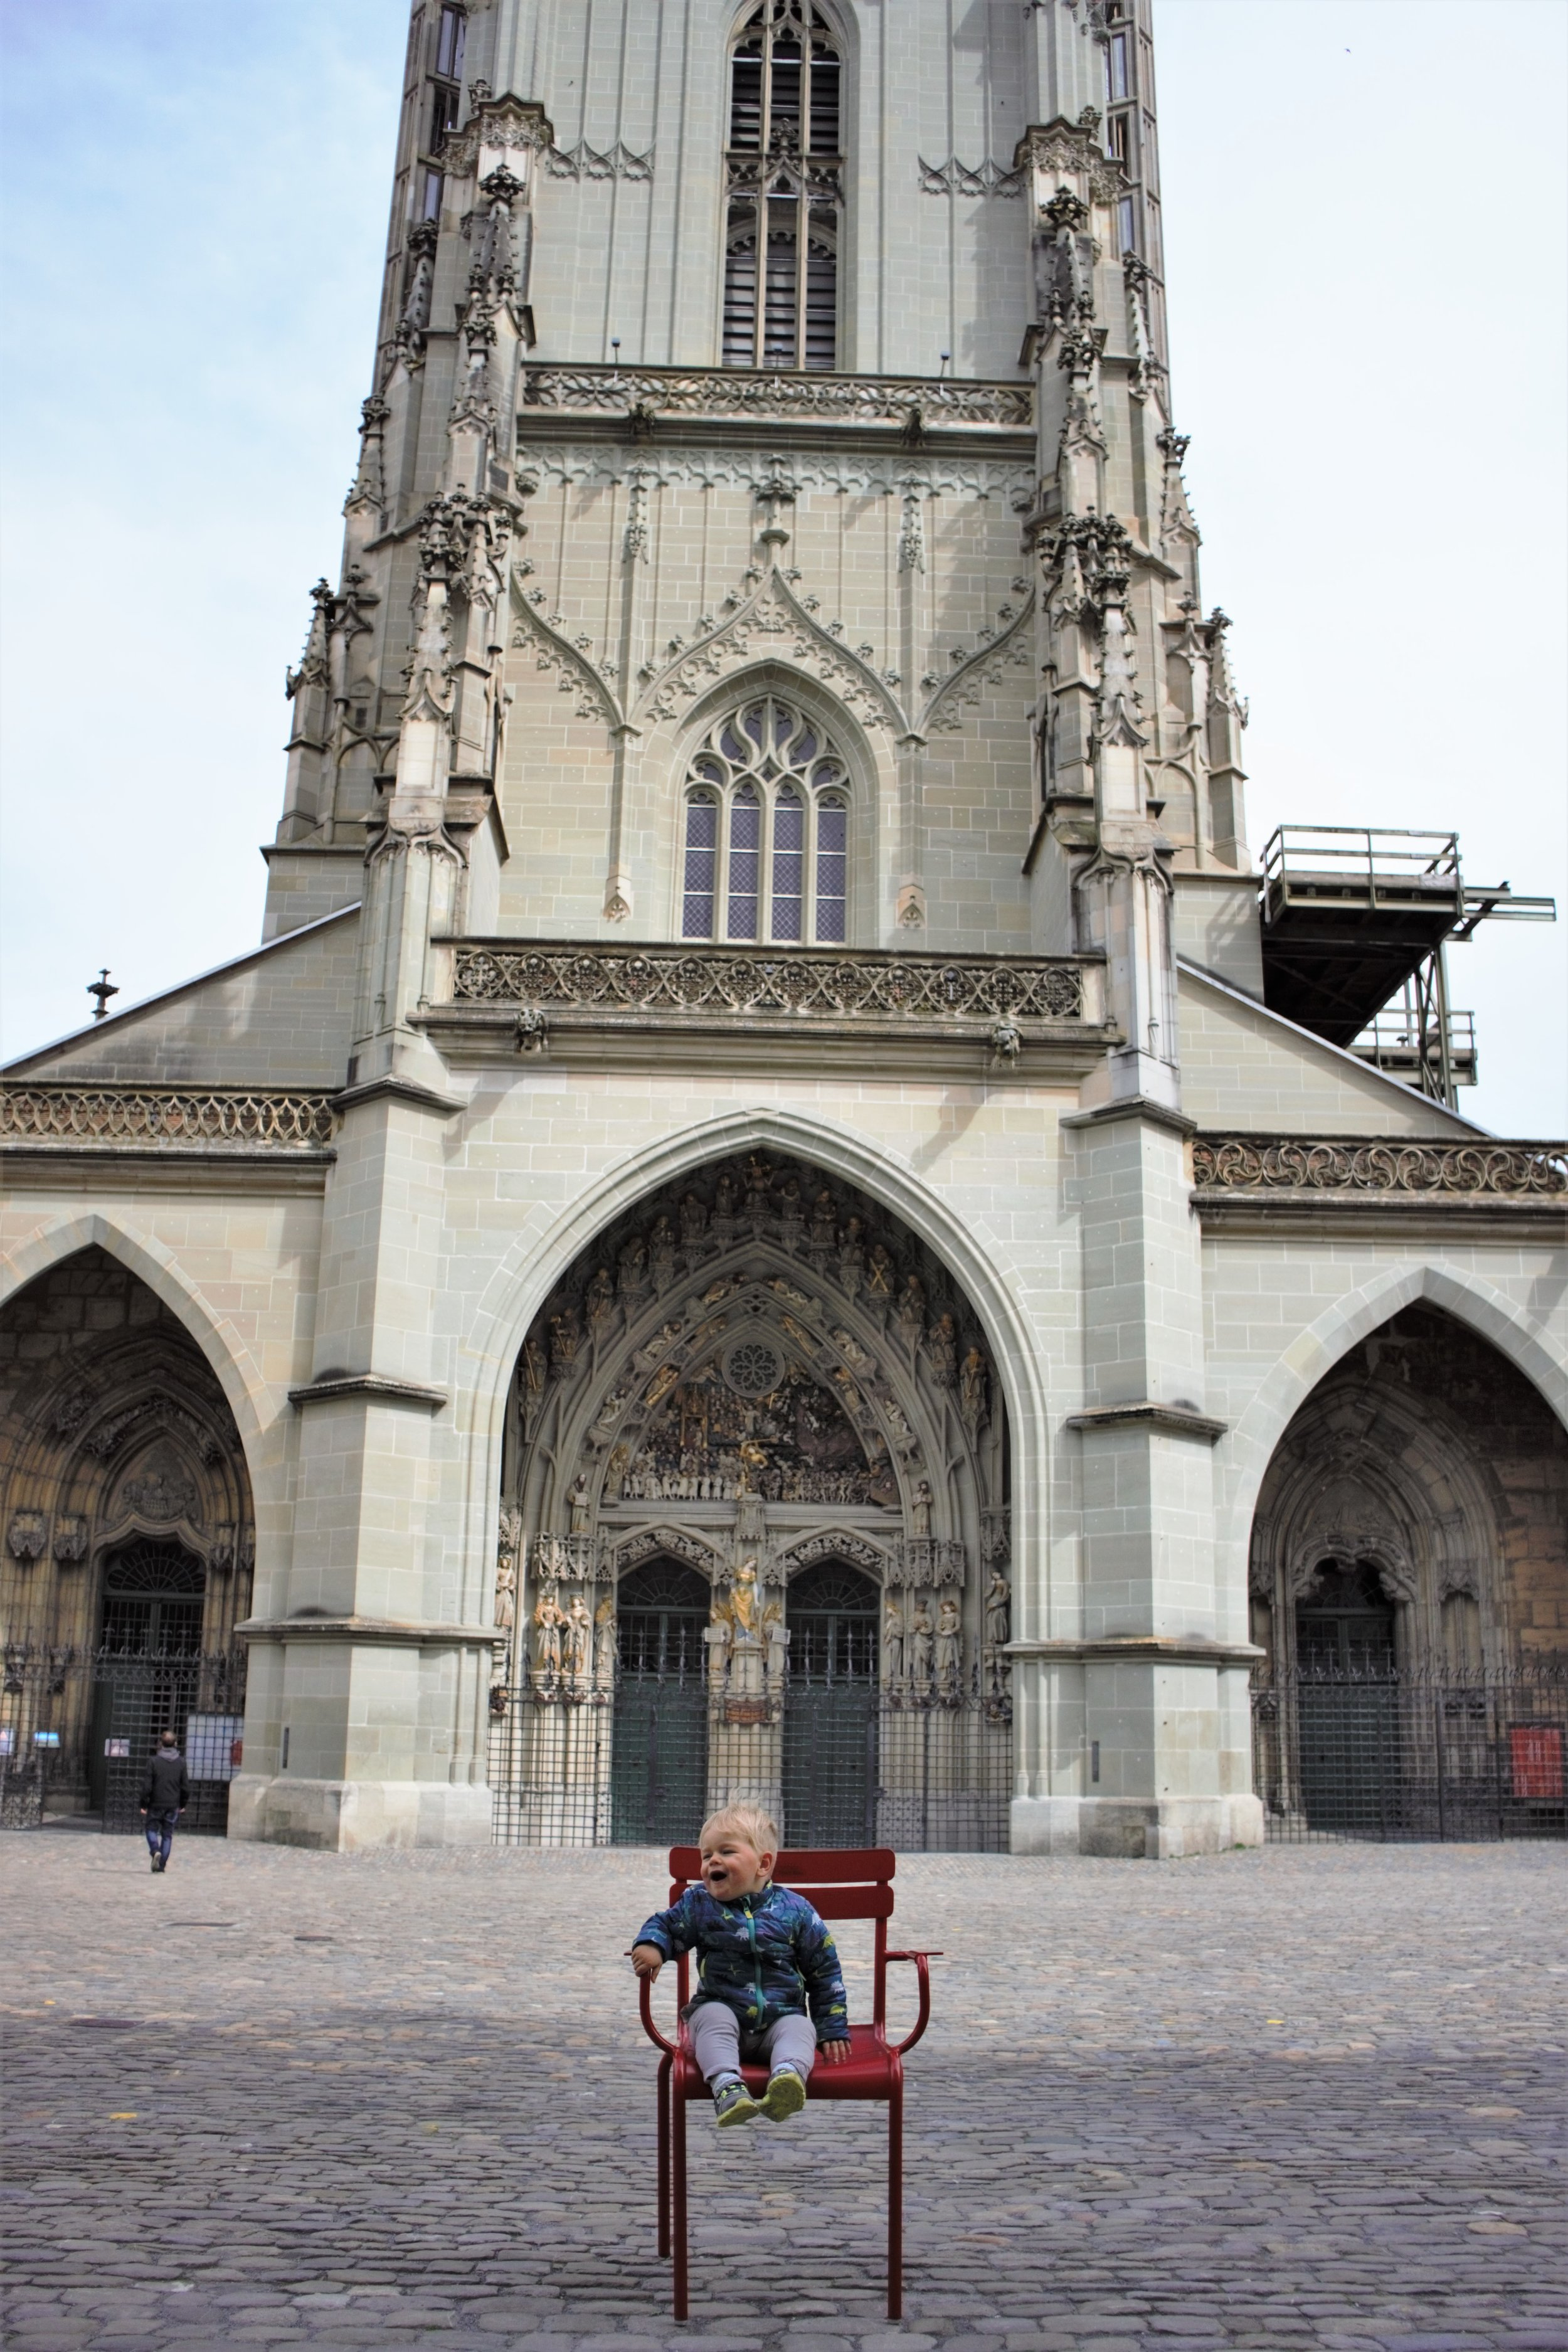 We did a little photoshoot in front of the Cathedral of Bern -- the tower is so tall I couldn't get it all in